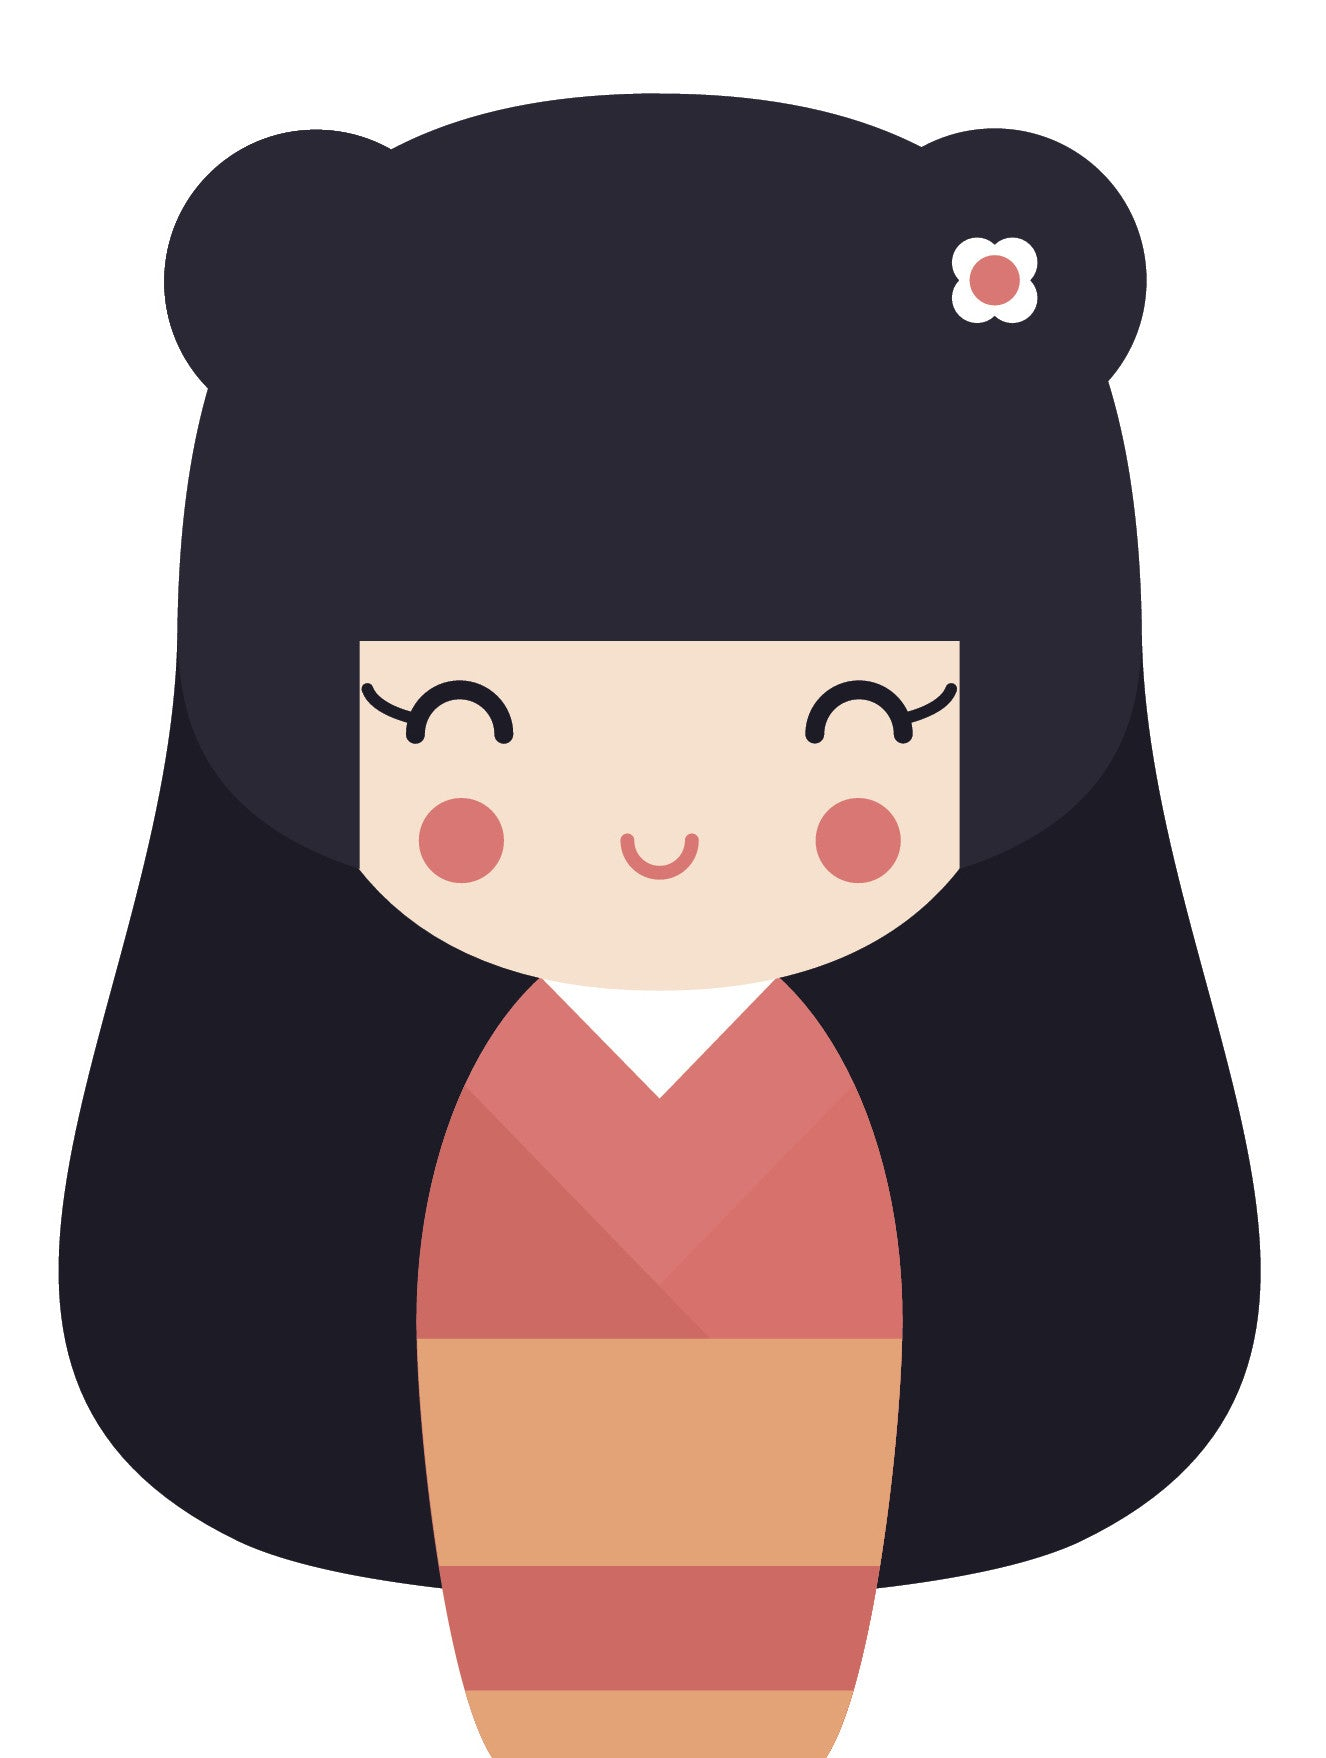 Adorable Geisha Girl in Kimono #5 Vinyl Decal Sticker